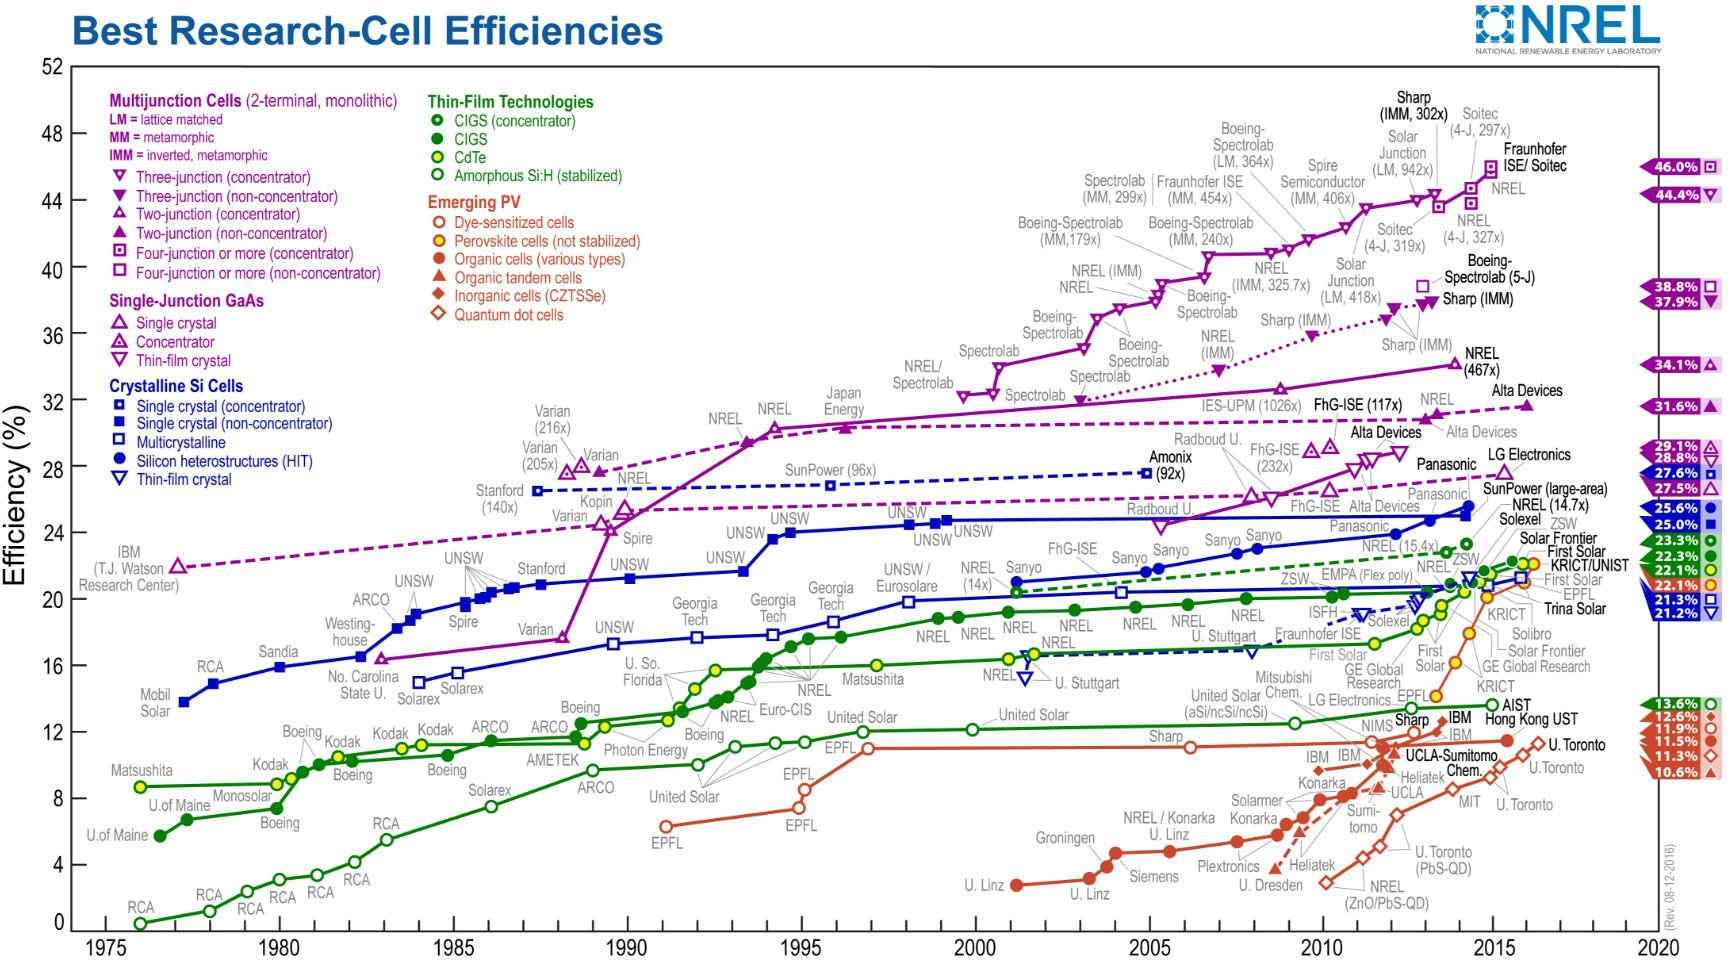 research-cell-efficiency-nrel